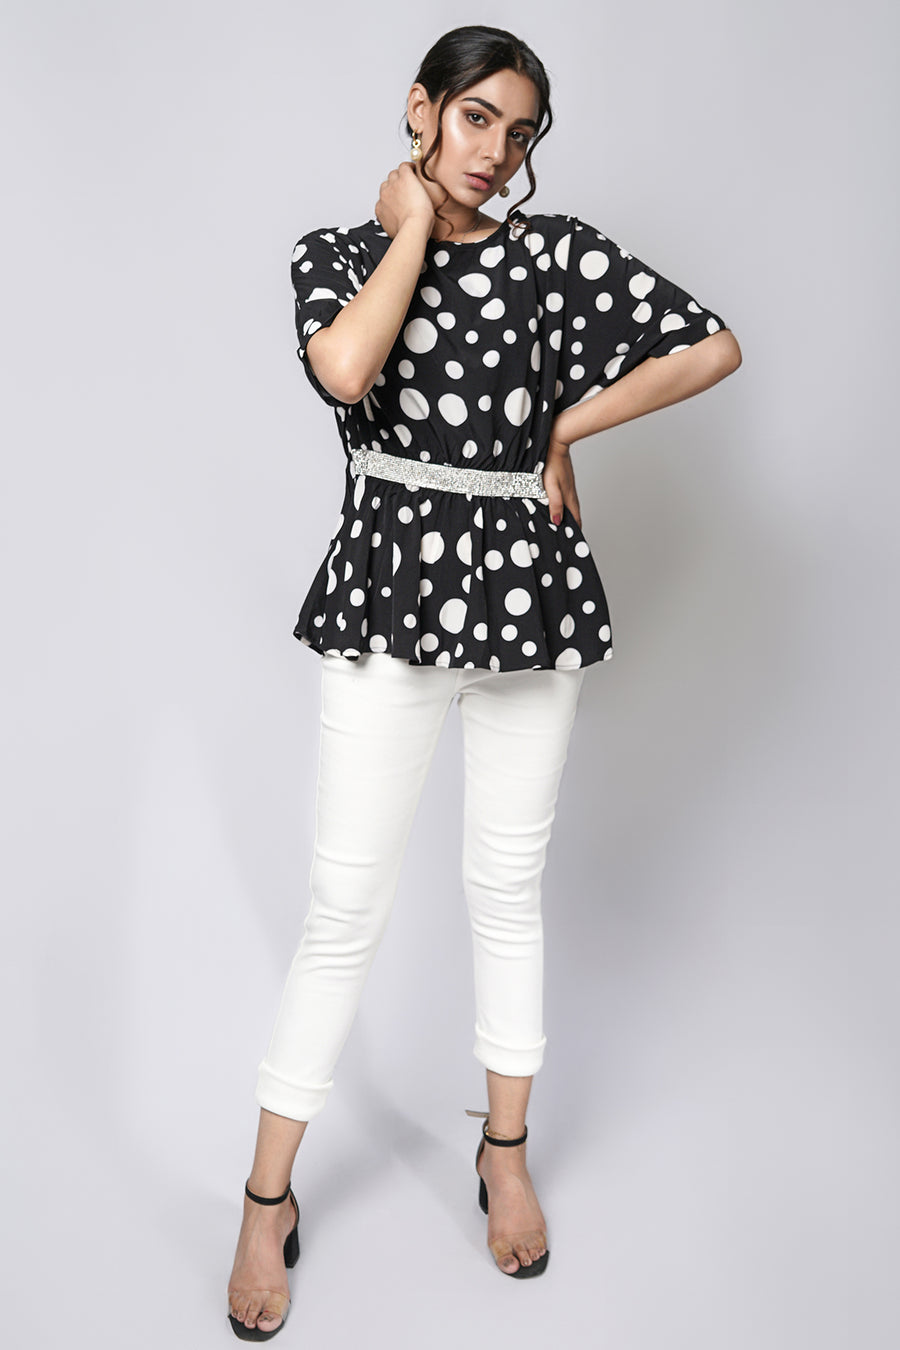 Polka dot tee with diamonte belt